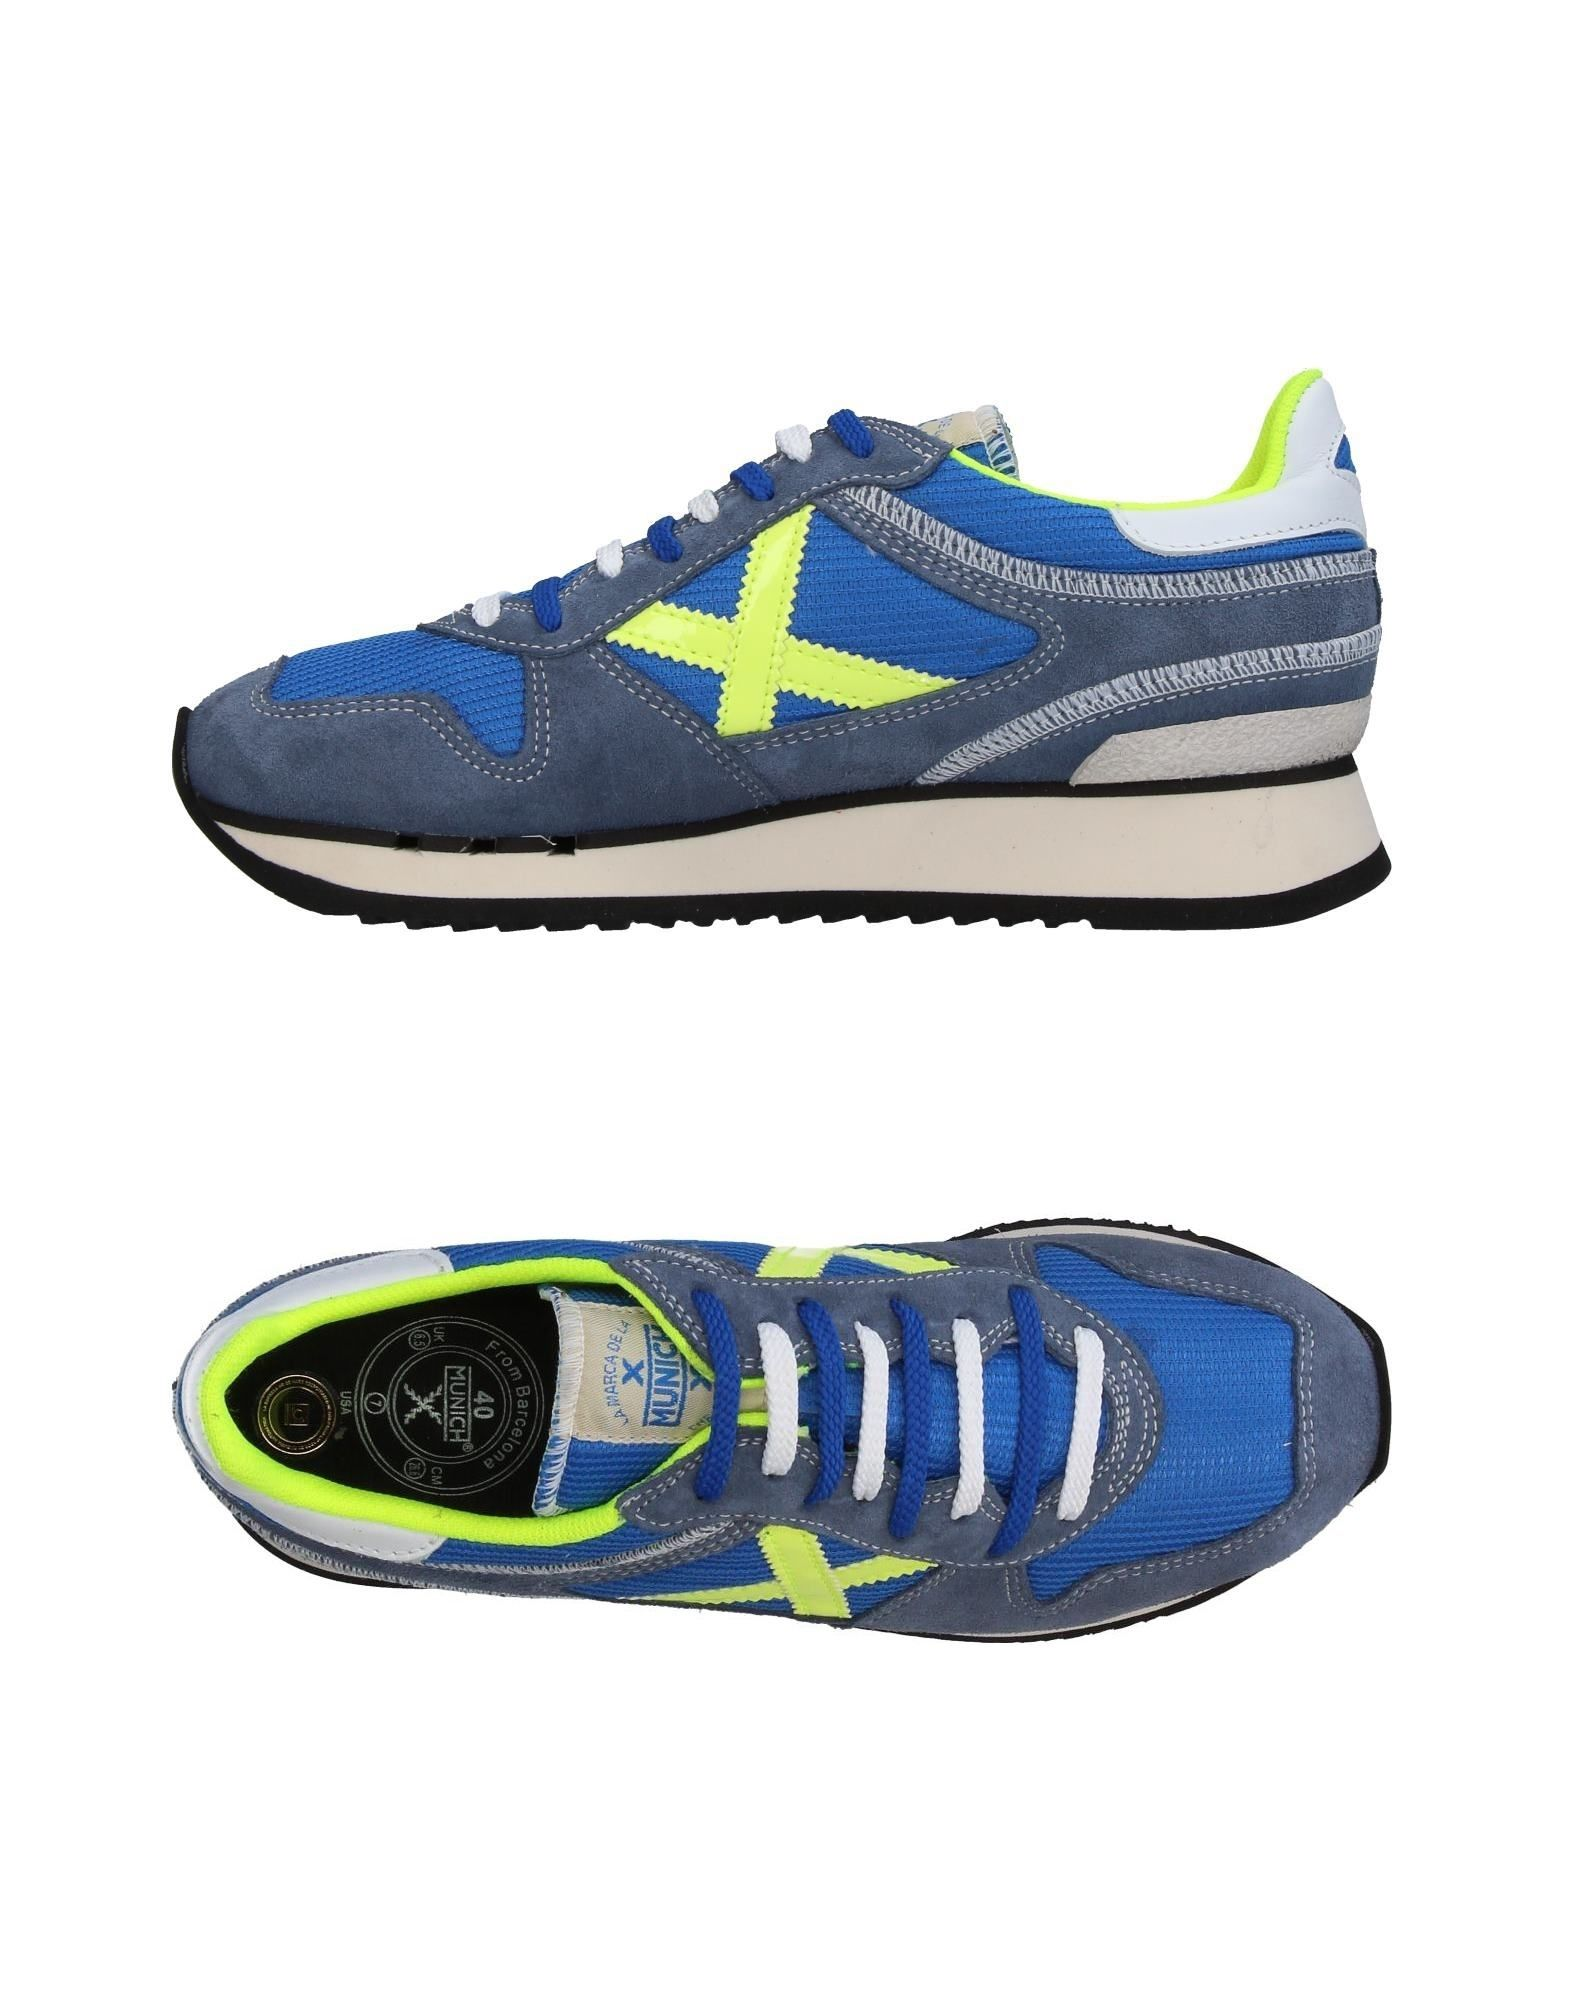 Moda Sneakers Munich Uomo - 11412970FT